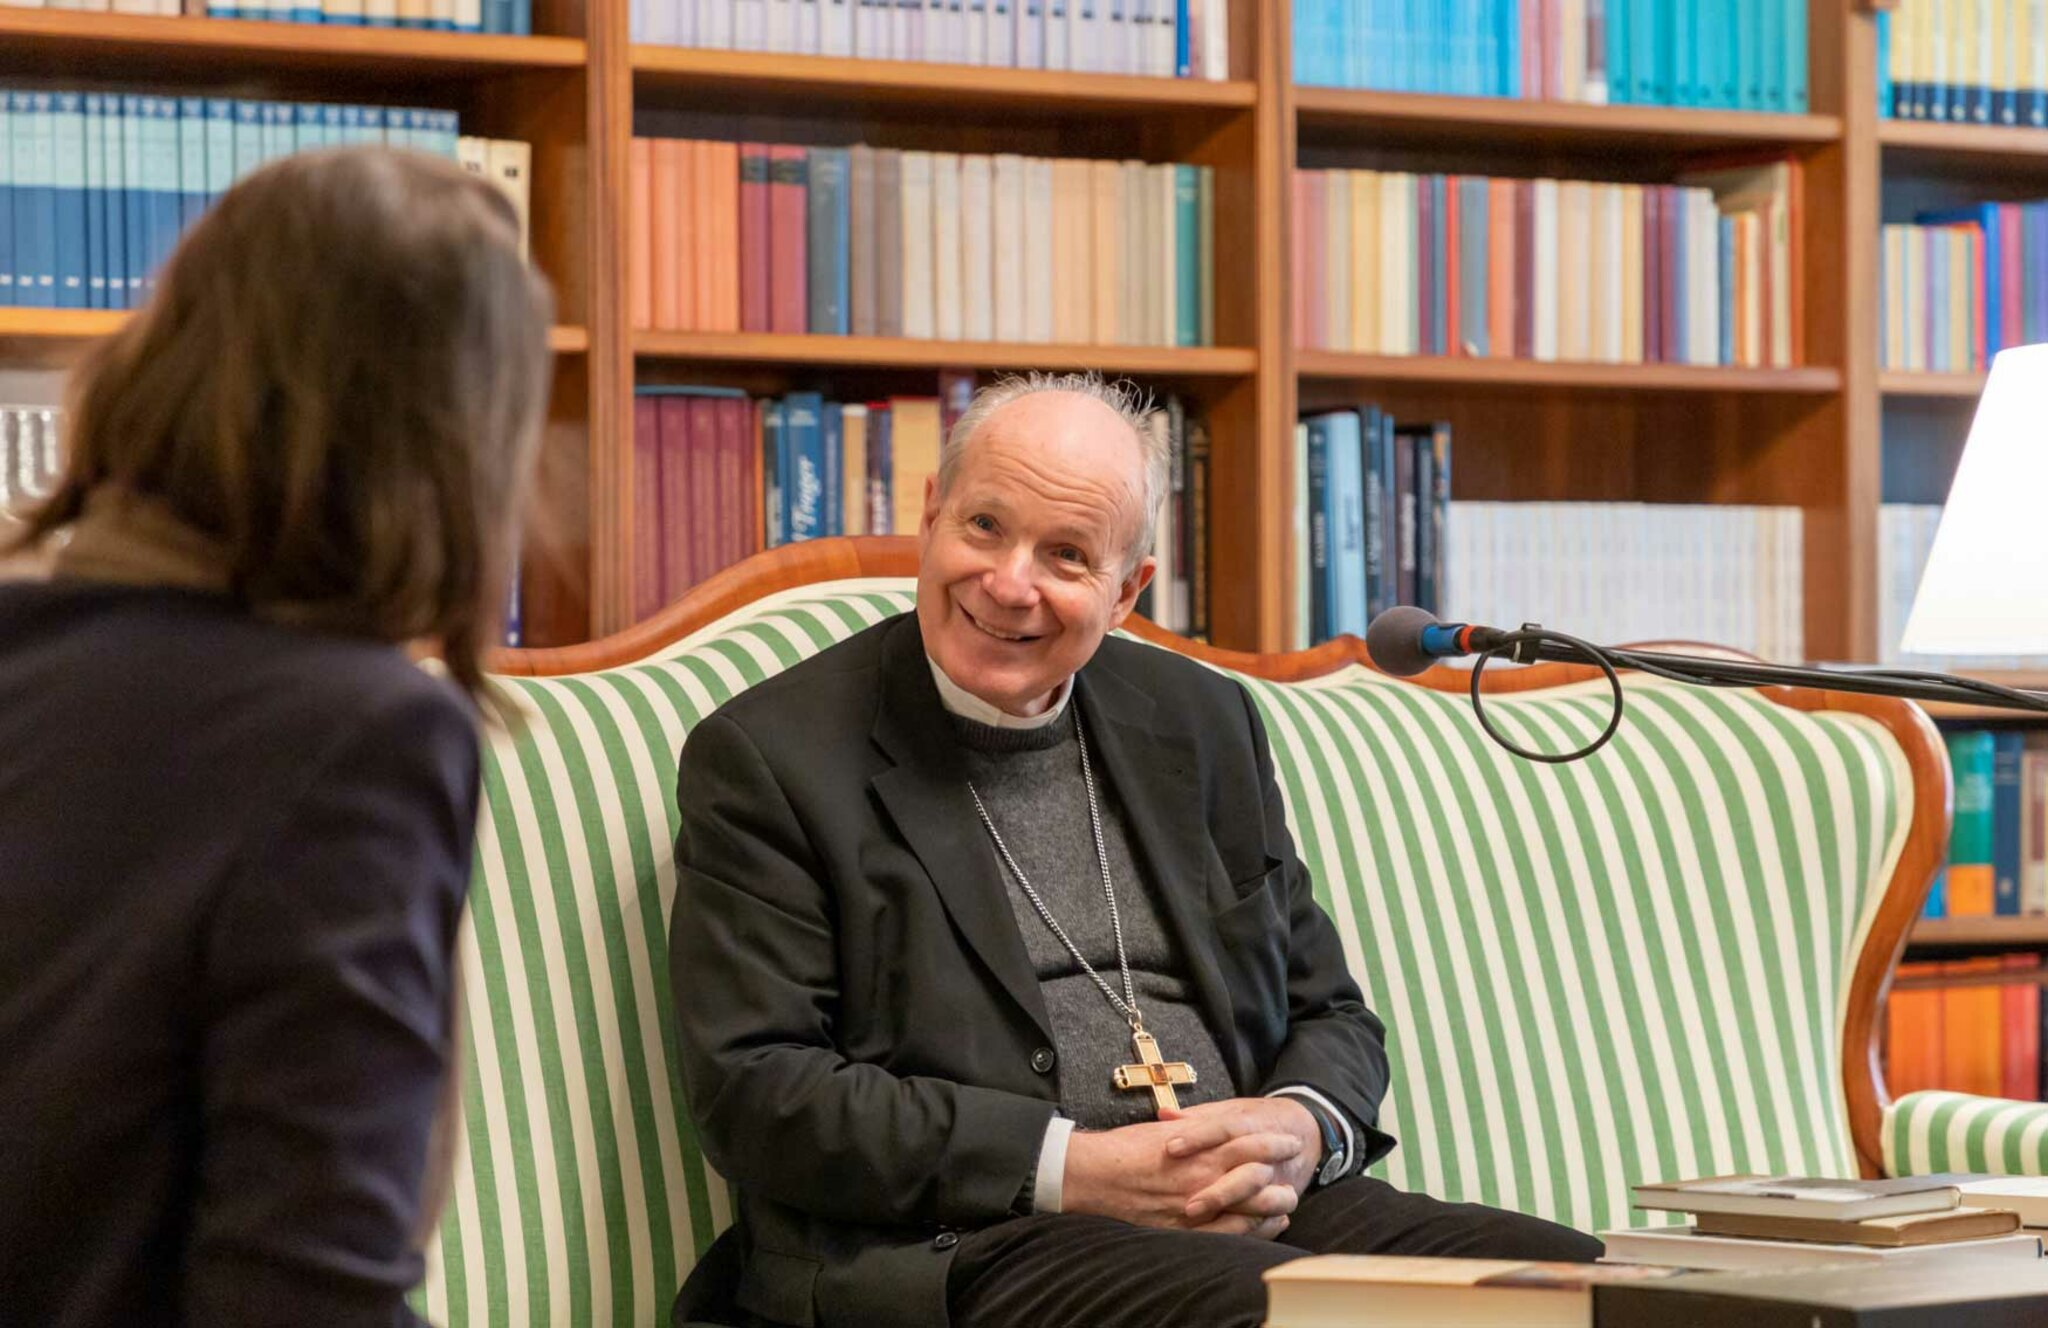 Cardinal Schönborn's Statement on Same-Sex Blessings, Translated